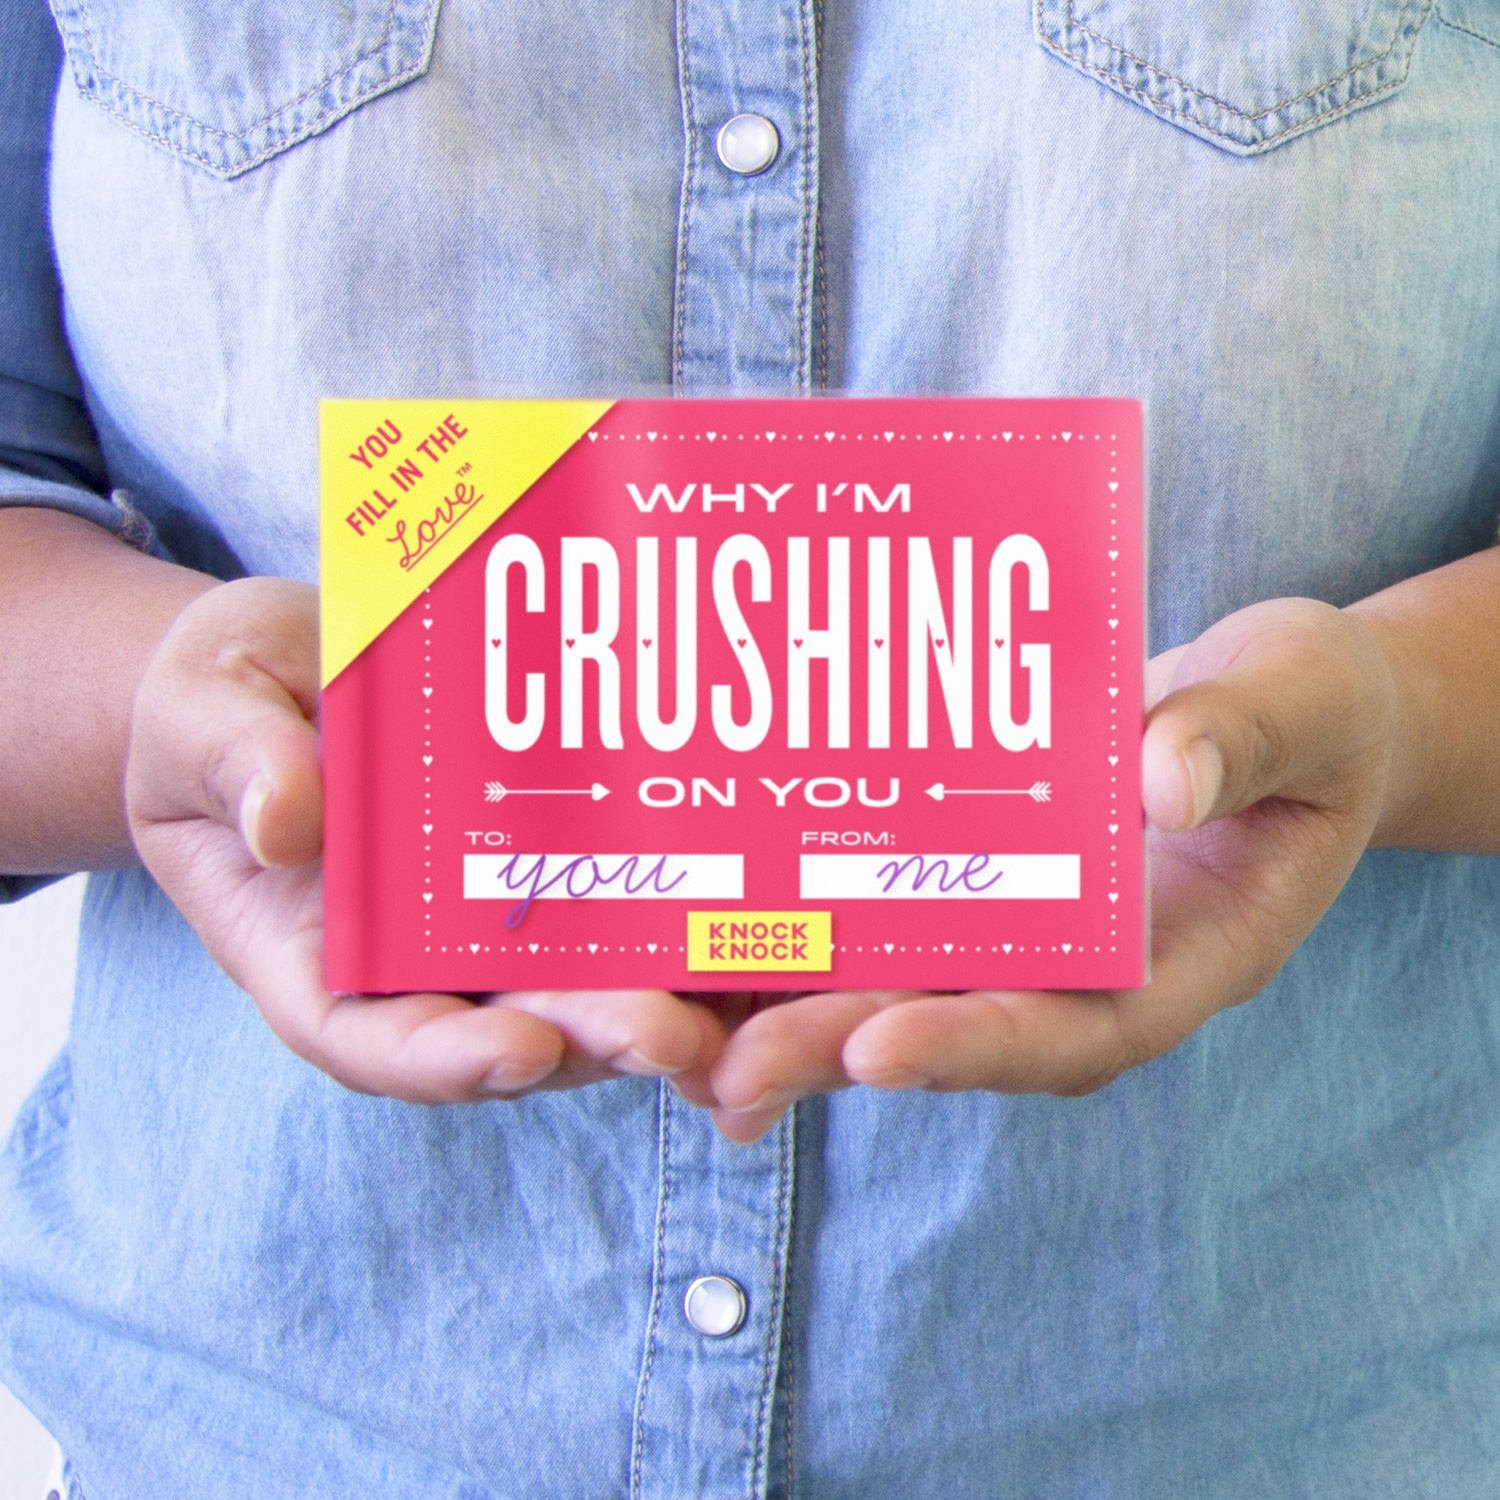 Knock Knock Why I'm Crushing on You Fill in the Love Journal by Knock Knock (Image #6)